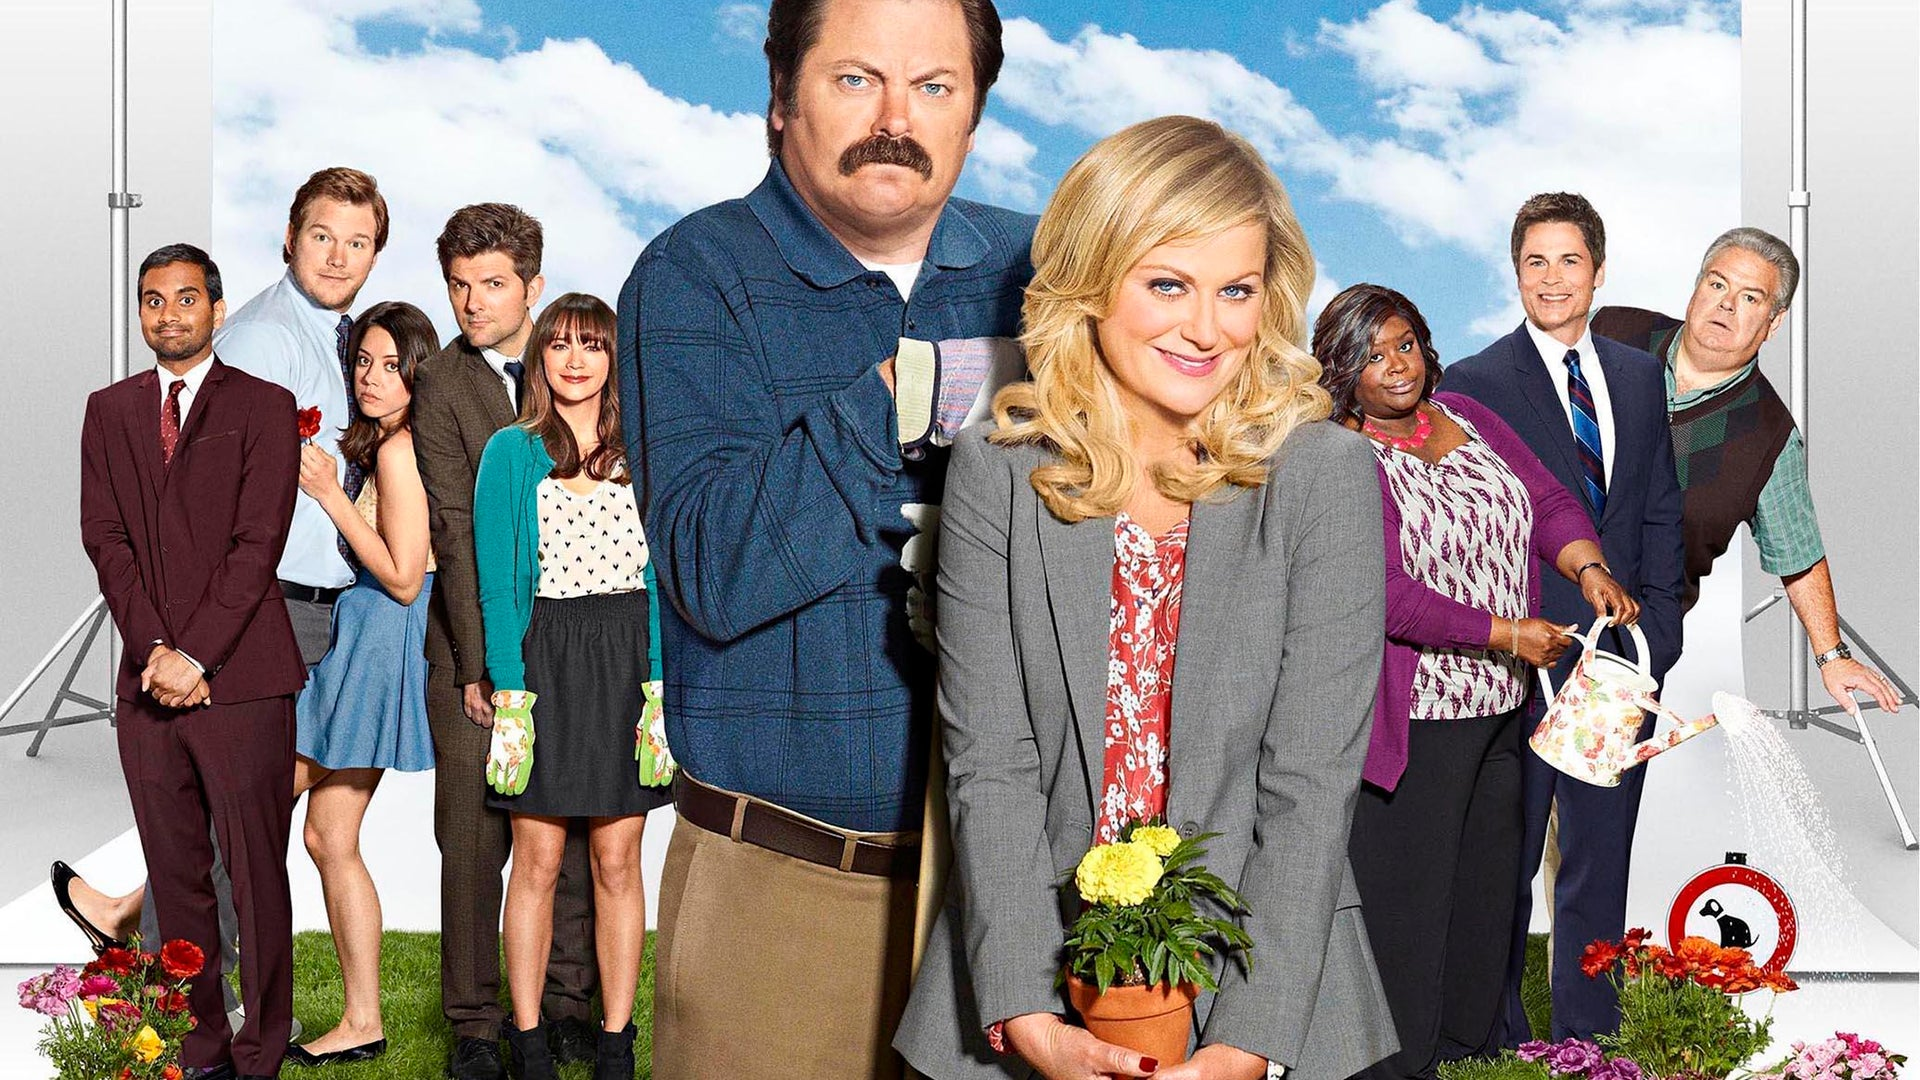 Parks and Recreation cast​